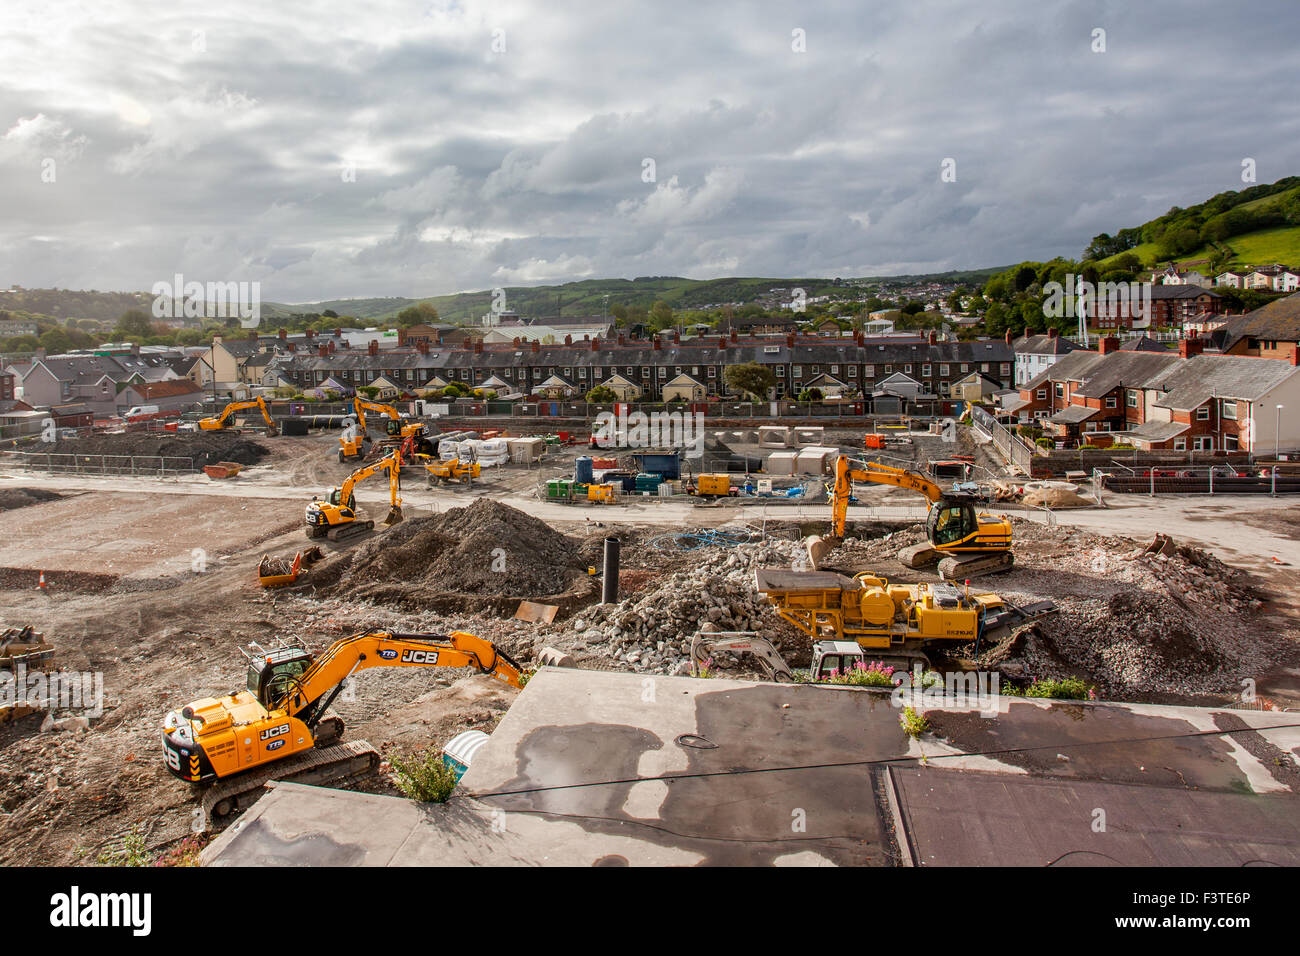 Future Tesco and Marks & Spencer site under construction at Aberystwyth 2015 - Stock Image